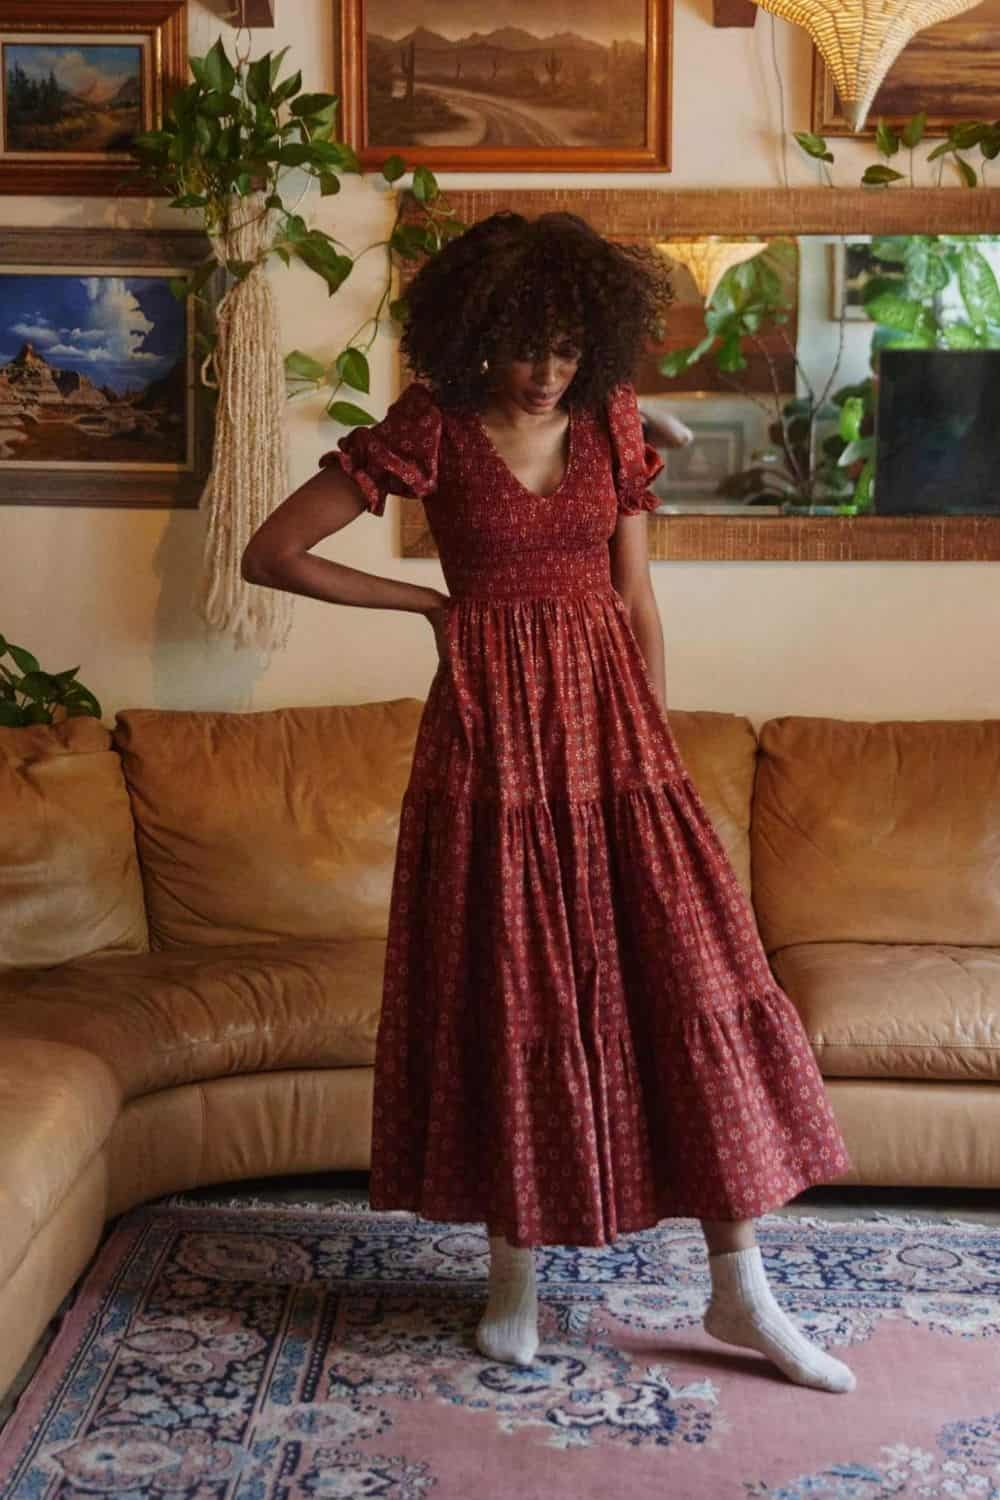 Fortunately, there are some good kids in the zero waste fashion world: Brands that are changing how we view fashion and using circular practices to keep valuable materials in use much, much longer Image by Christy Dawn #zerowastefashion #sustainablejungle